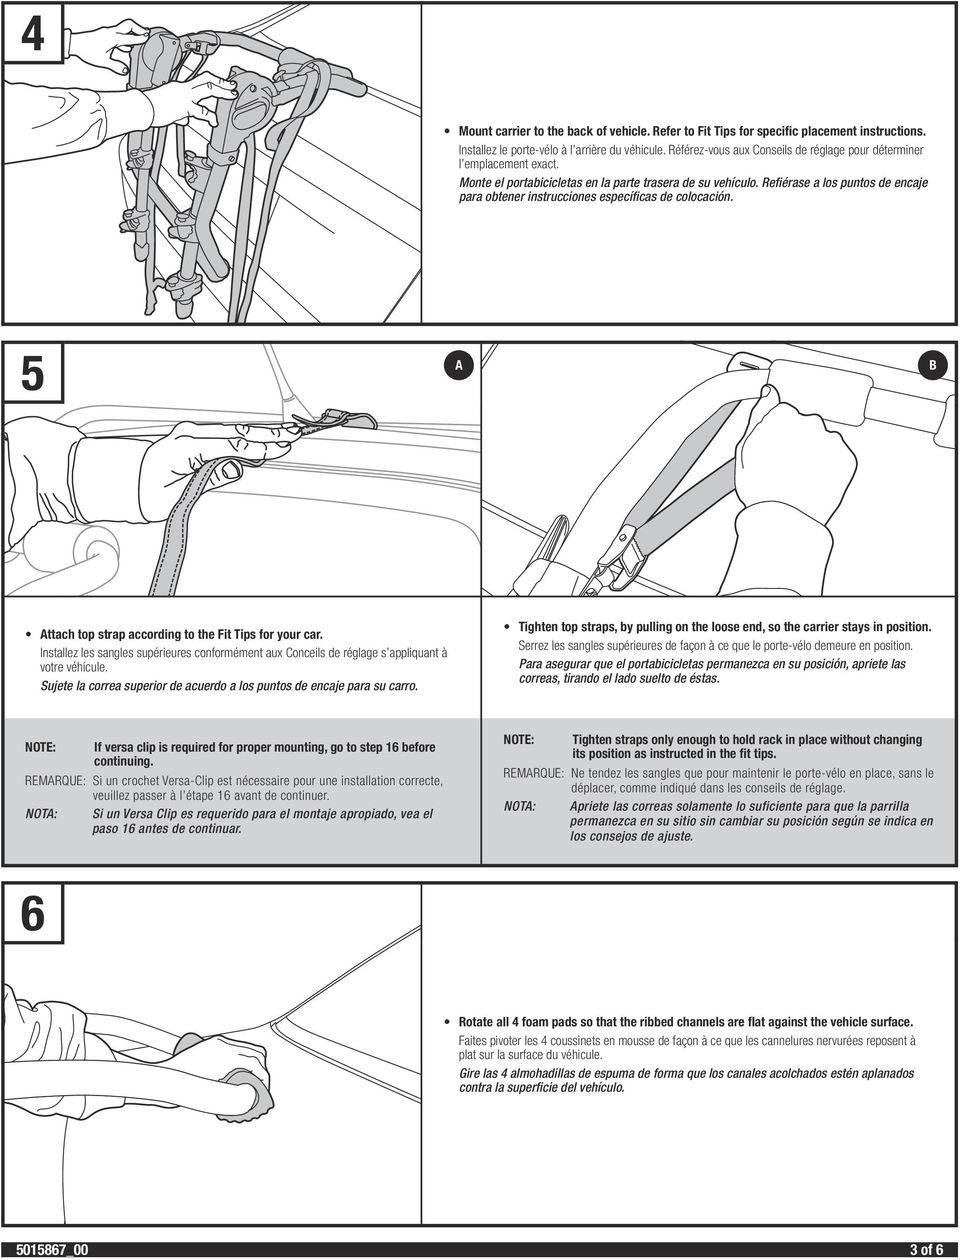 Refiérase a los puntos de encaje para obtener instrucciones específicas de colocación. 5 A B Attach top strap according to the Fit Tips for your car.